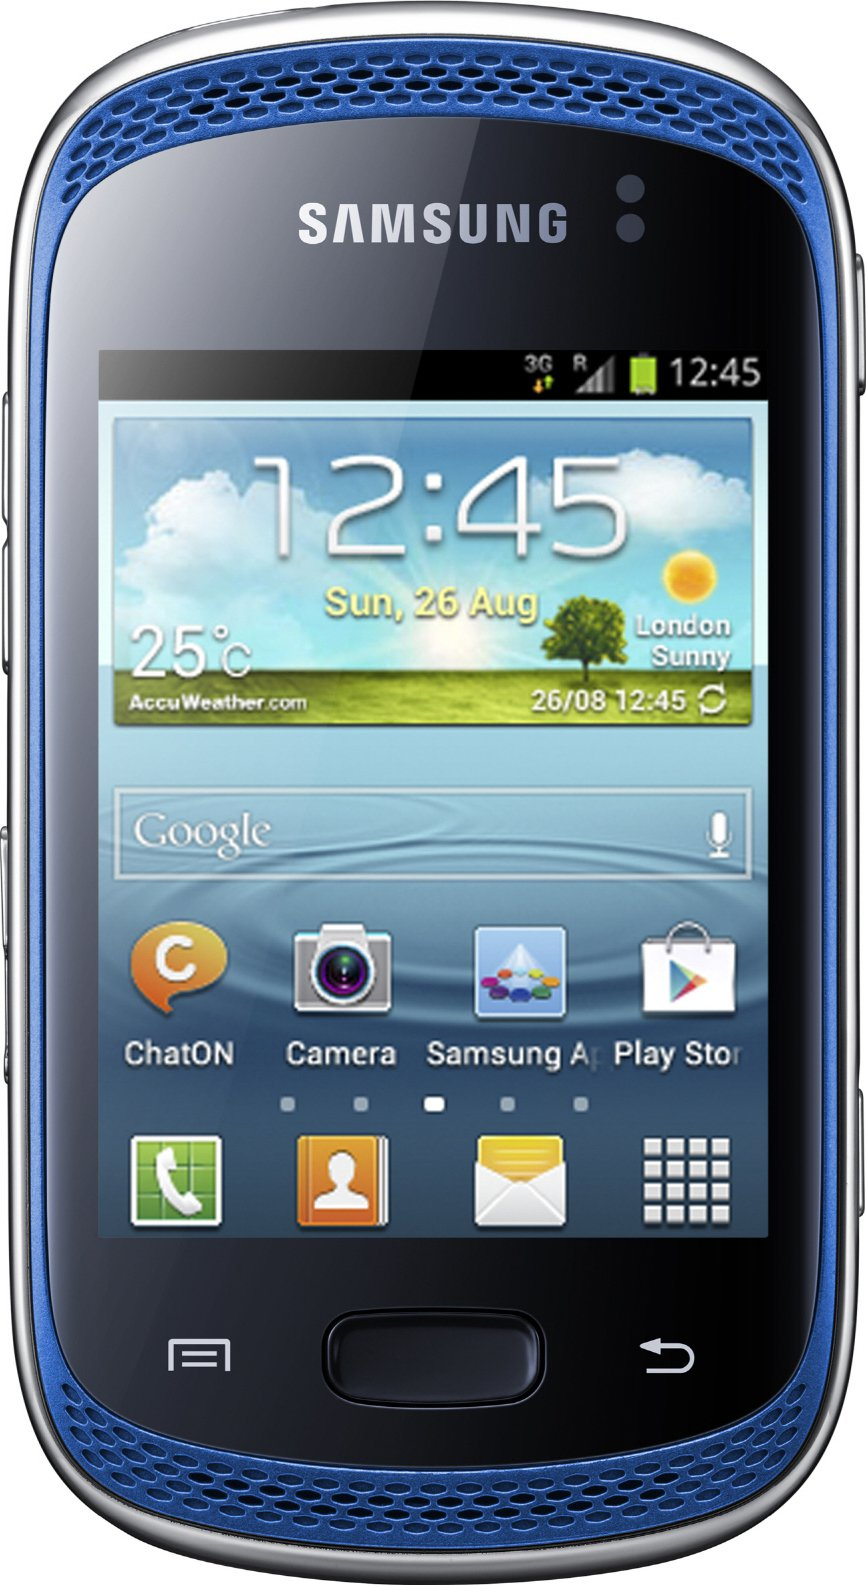 Immagine Samsung Galaxy Music